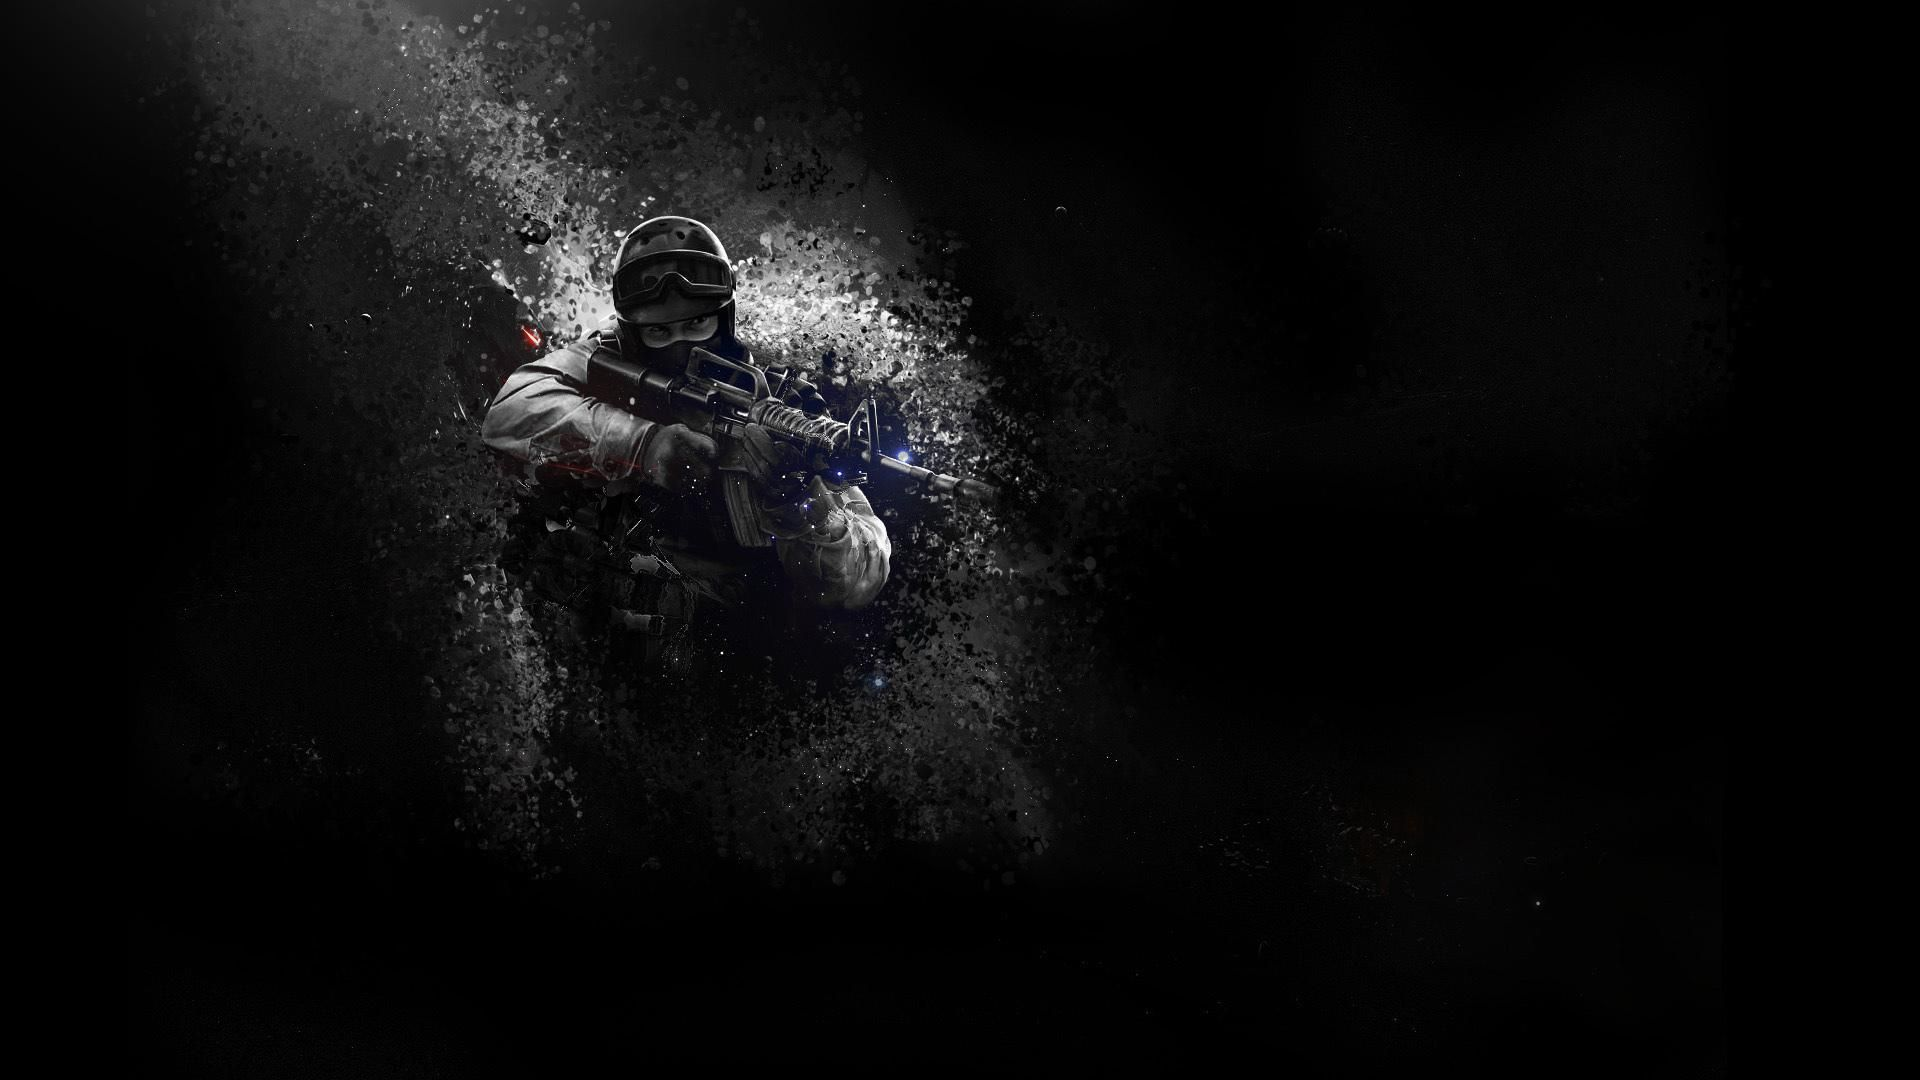 Pin By Dmarket On Cs Go Wallpapers Pinterest Go Wallpaper